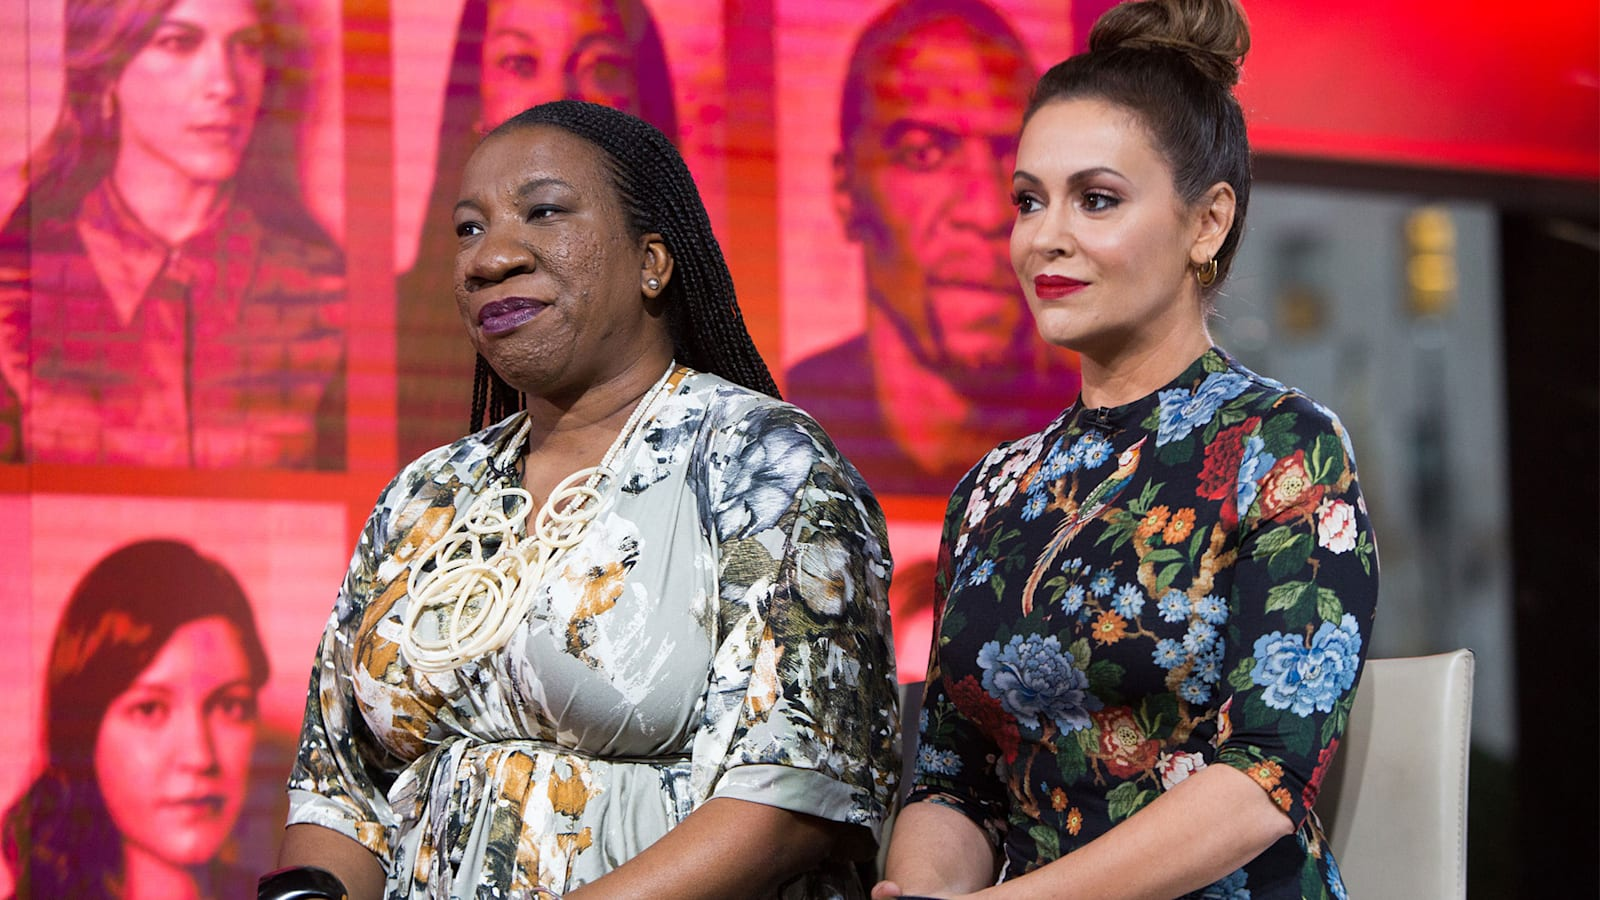 19 Million #MeToo Tweets Later: Alyssa Milano and Tarana Burke Reflect on the Year After #MeToo